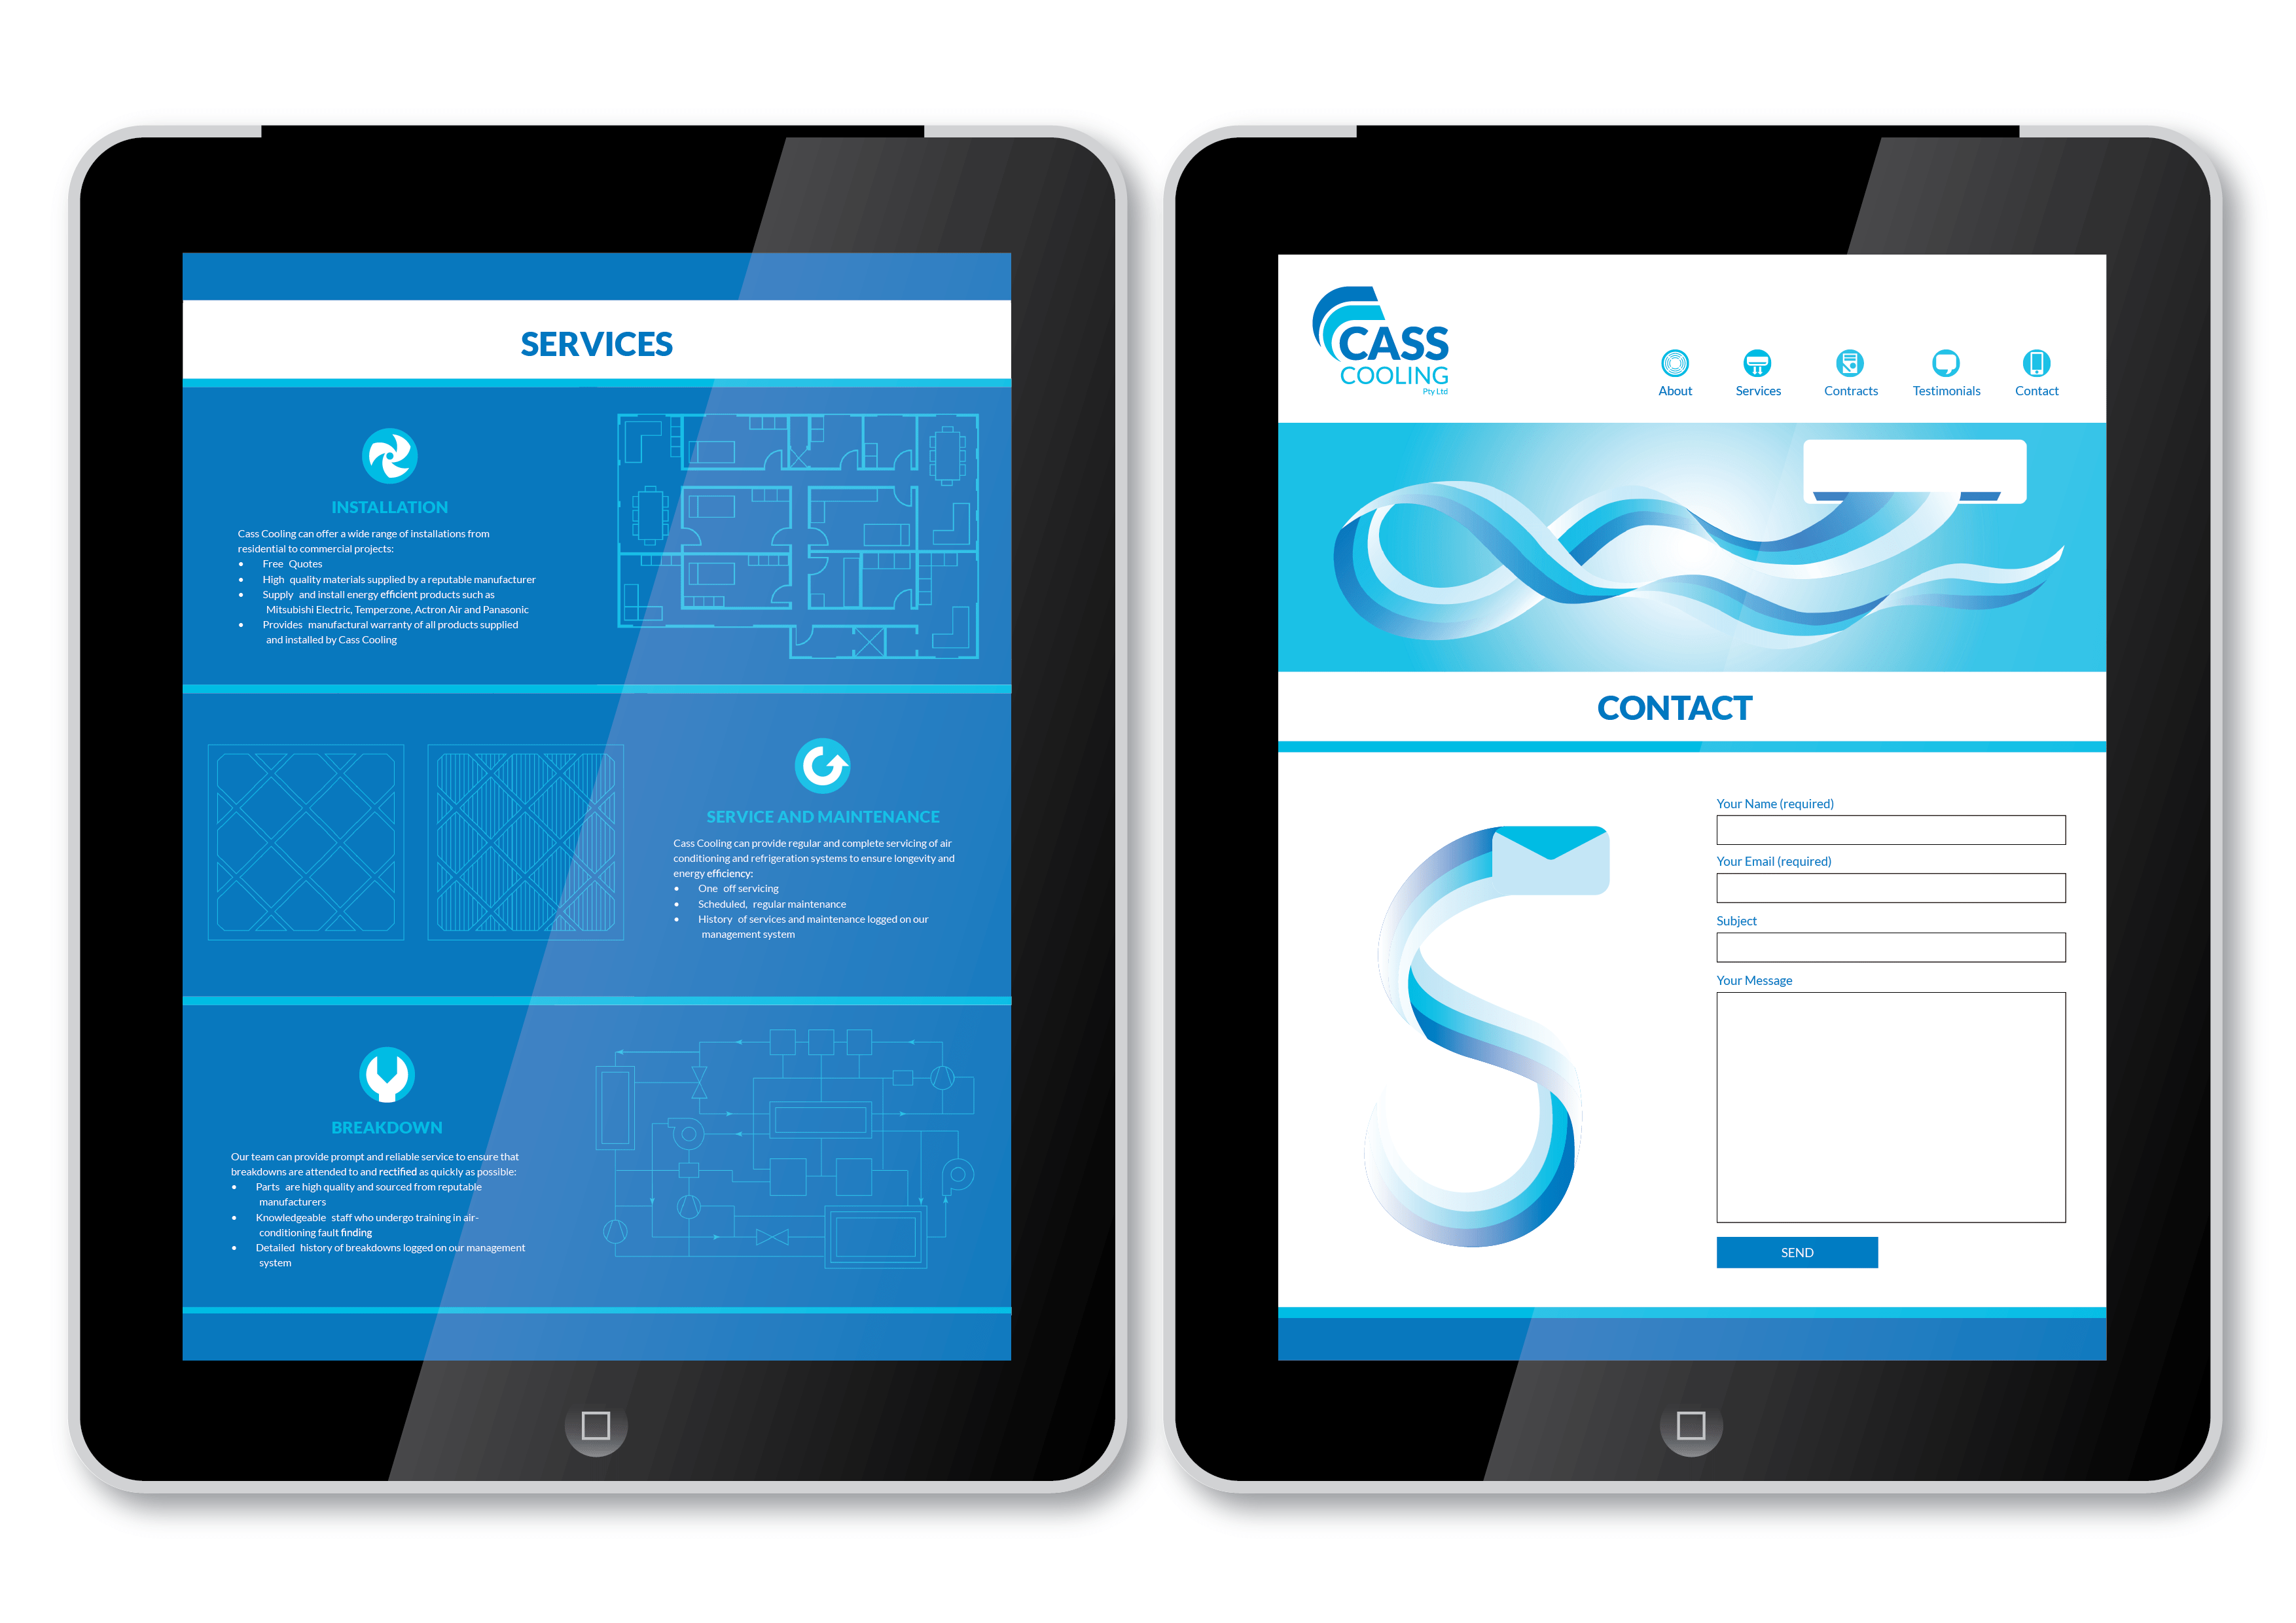 Cass Cooling website mockup services and contact pages